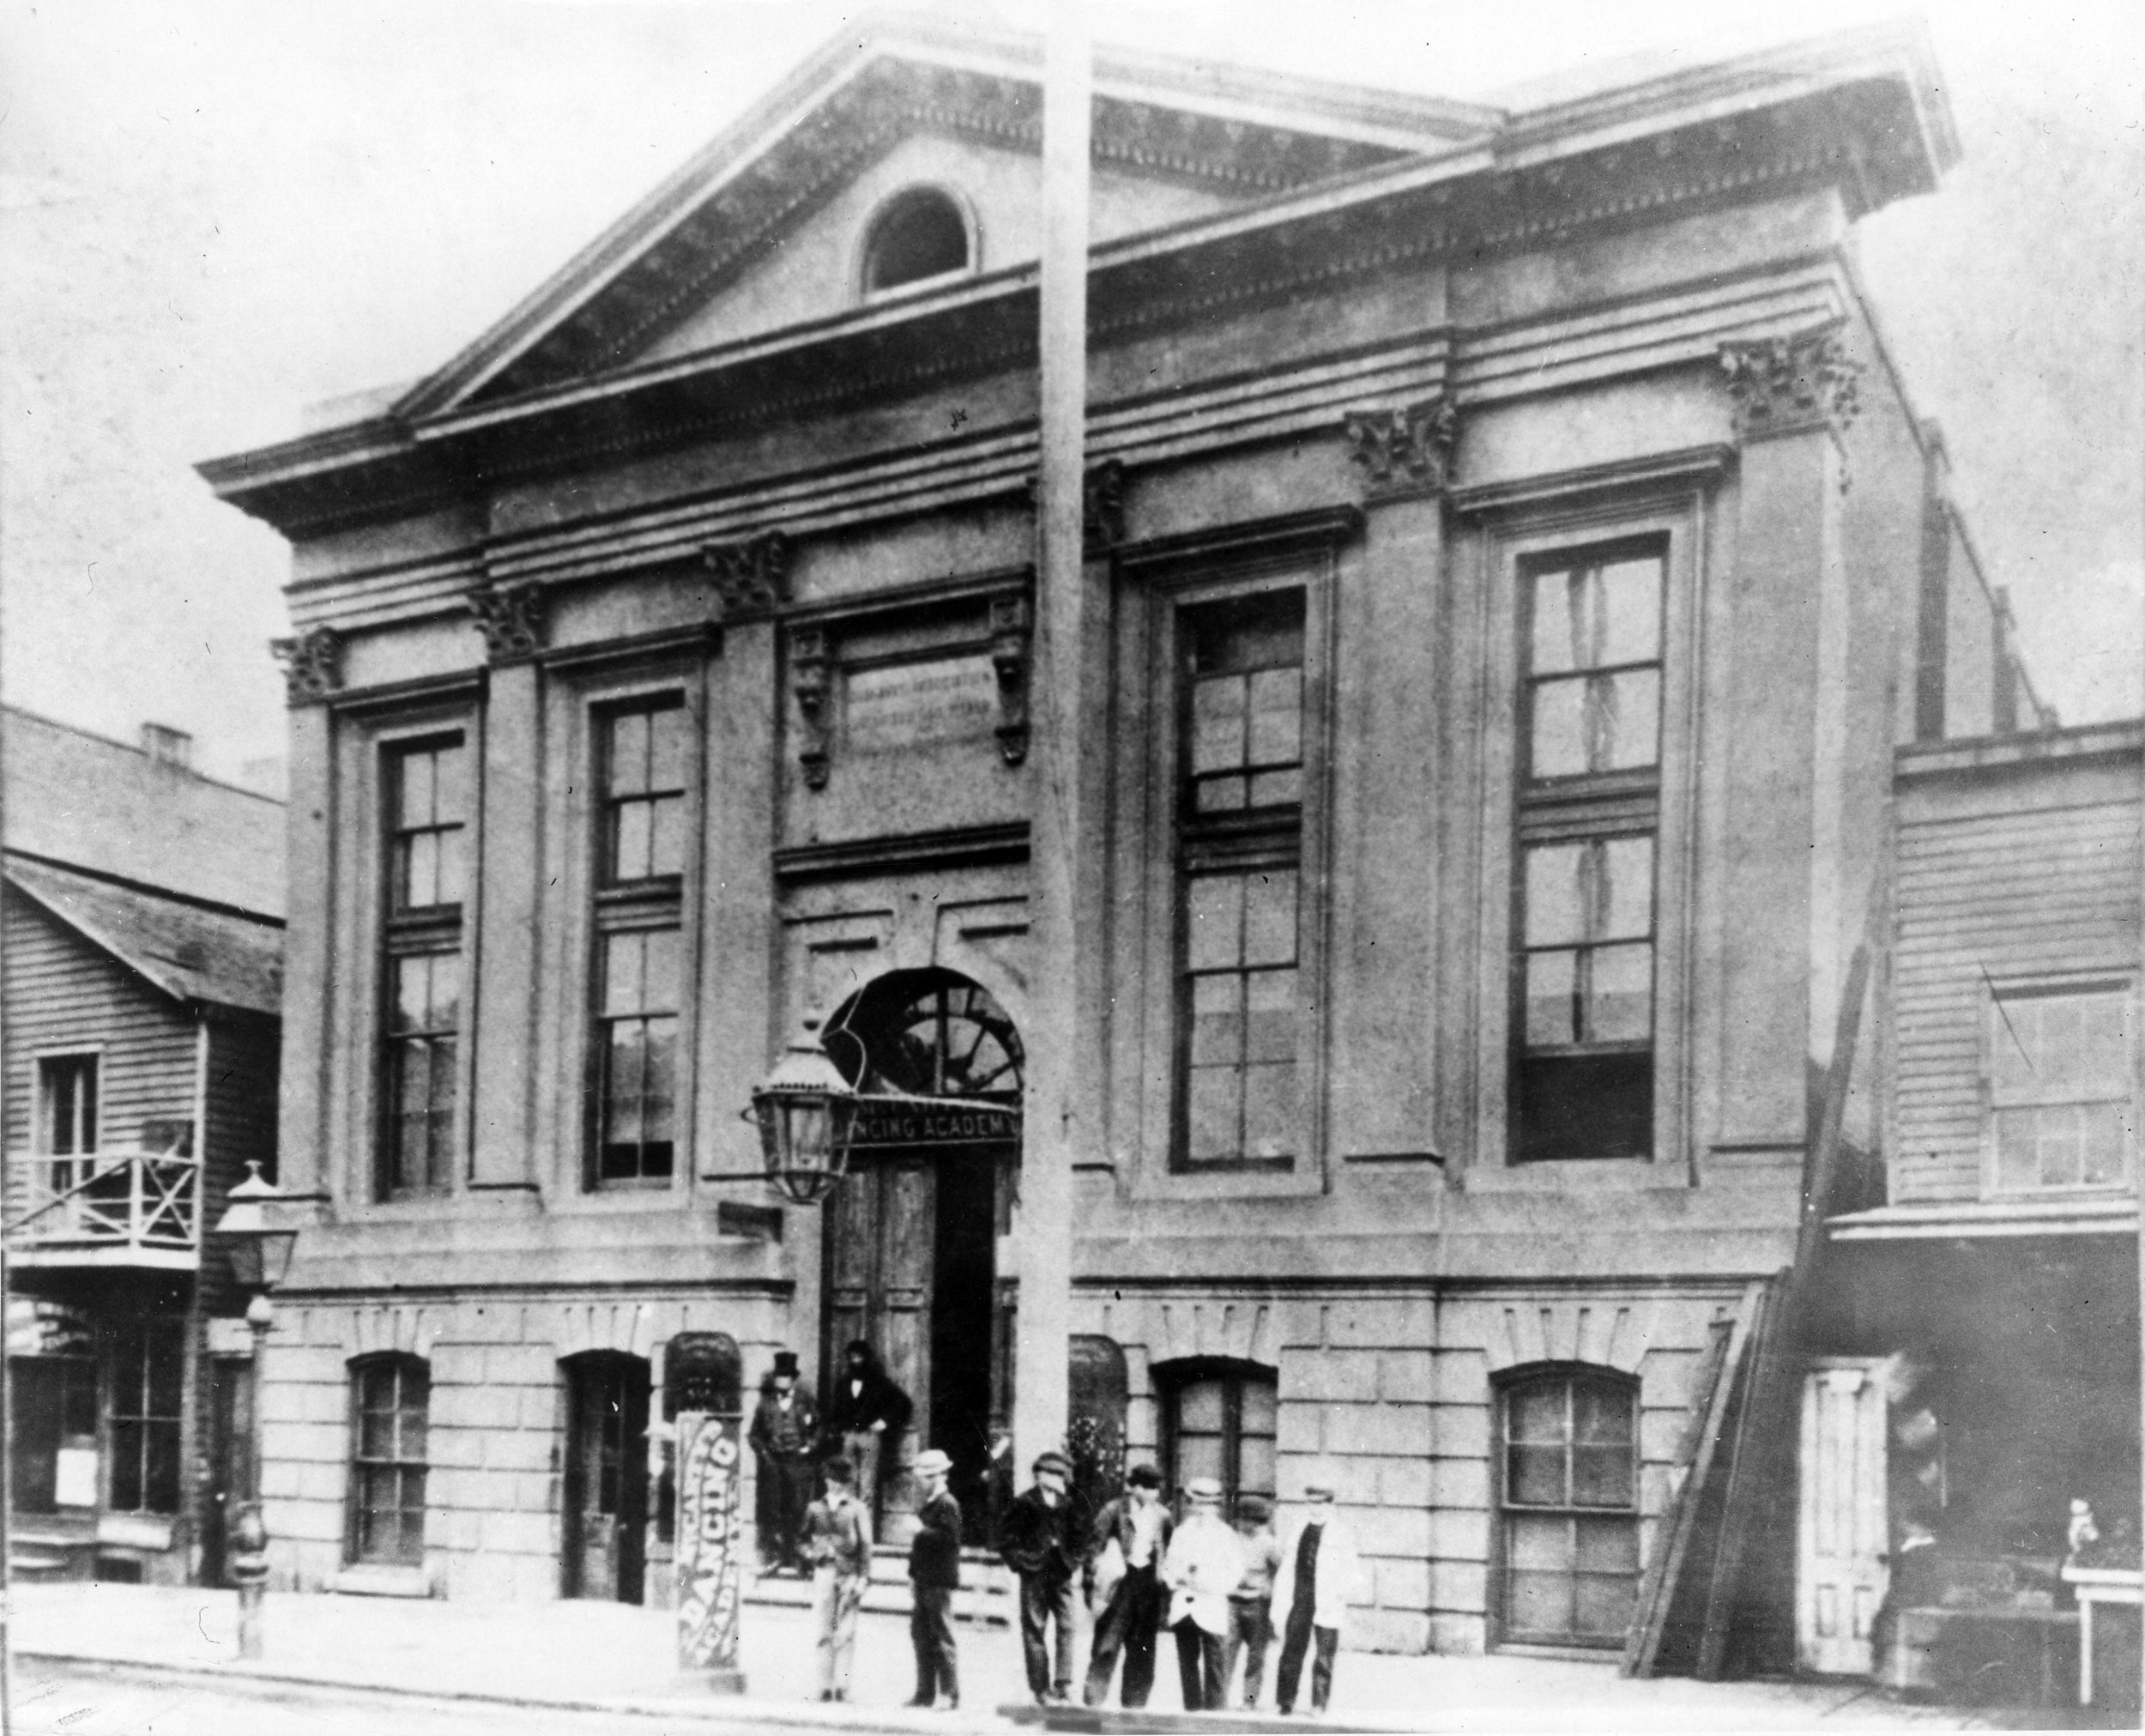 Dashaway Hall, at  139 Post Street, San Francisco, in 1867.  Here, the Emperor Norton attended weekly meetings of the Lyceum for Self-Culture. Photograph by Eadweard Muybridge. Source:  San Jose State University . (This building and site has been added to The Emperor's Bridge Campaign's Emperor Norton Map of the World,  here .)